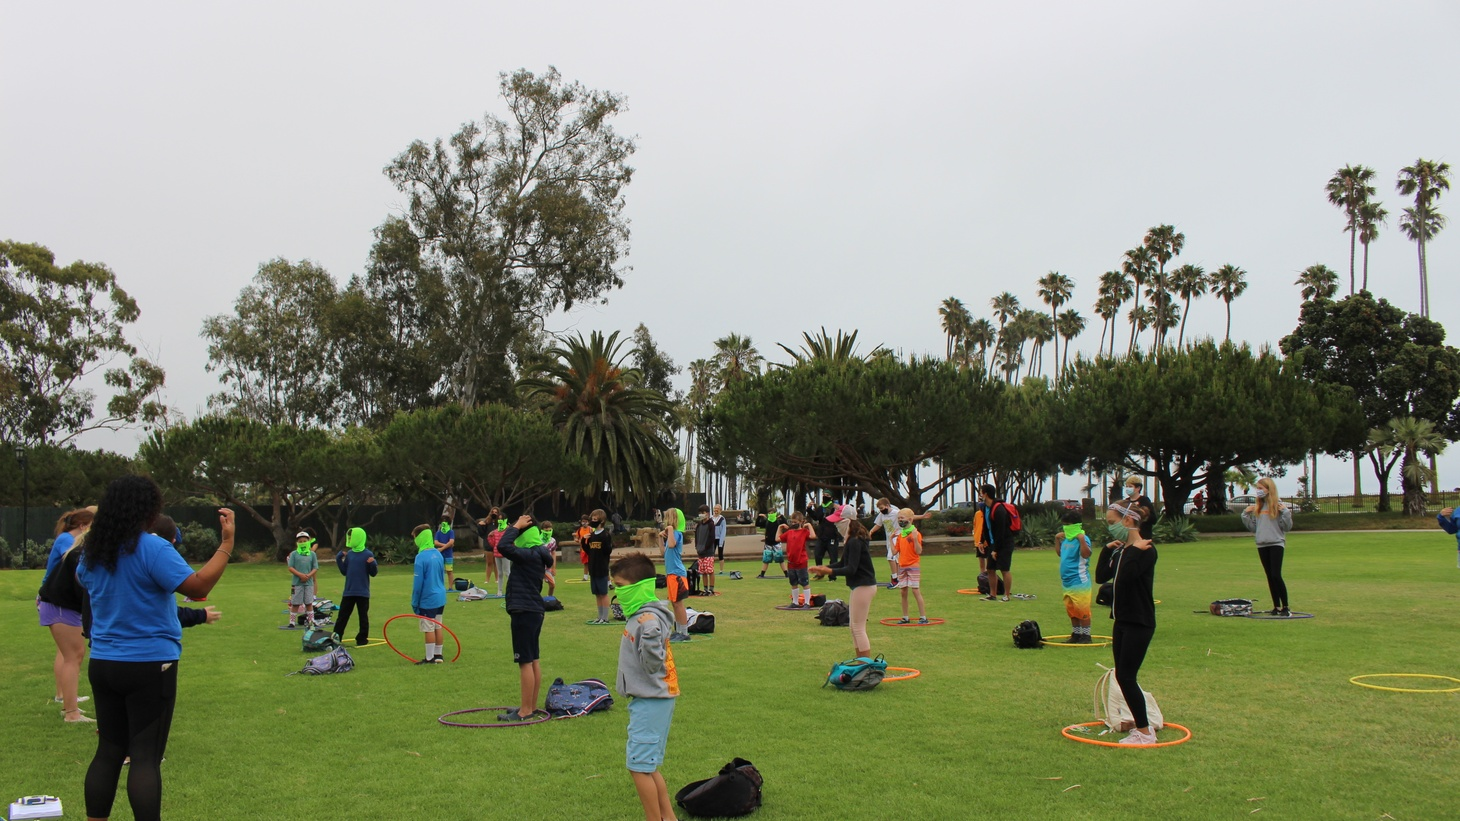 Kids at Nature Camp in Santa Barbara must stay inside a hula hoop, spaced six feet apart, during the morning sing-along.